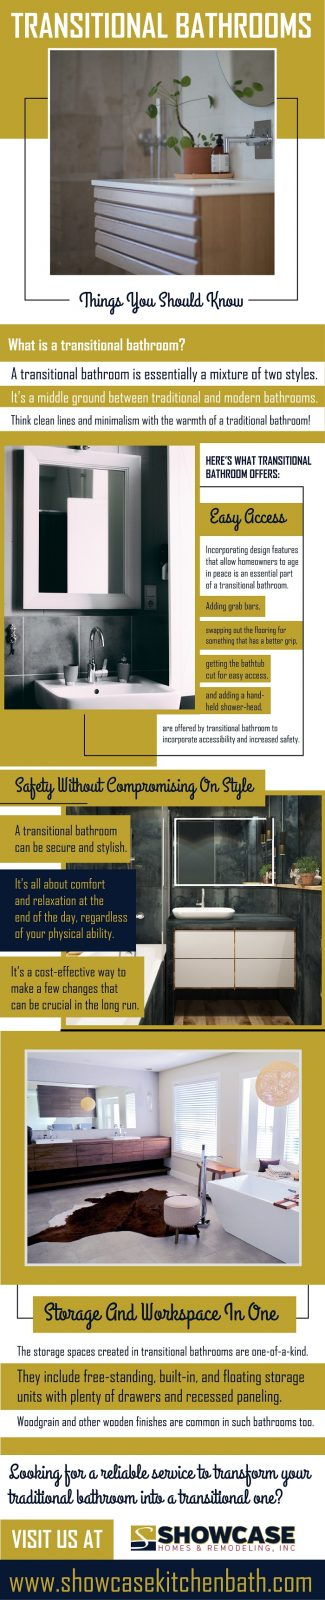 Transitional Bathrooms - Things You Should Know